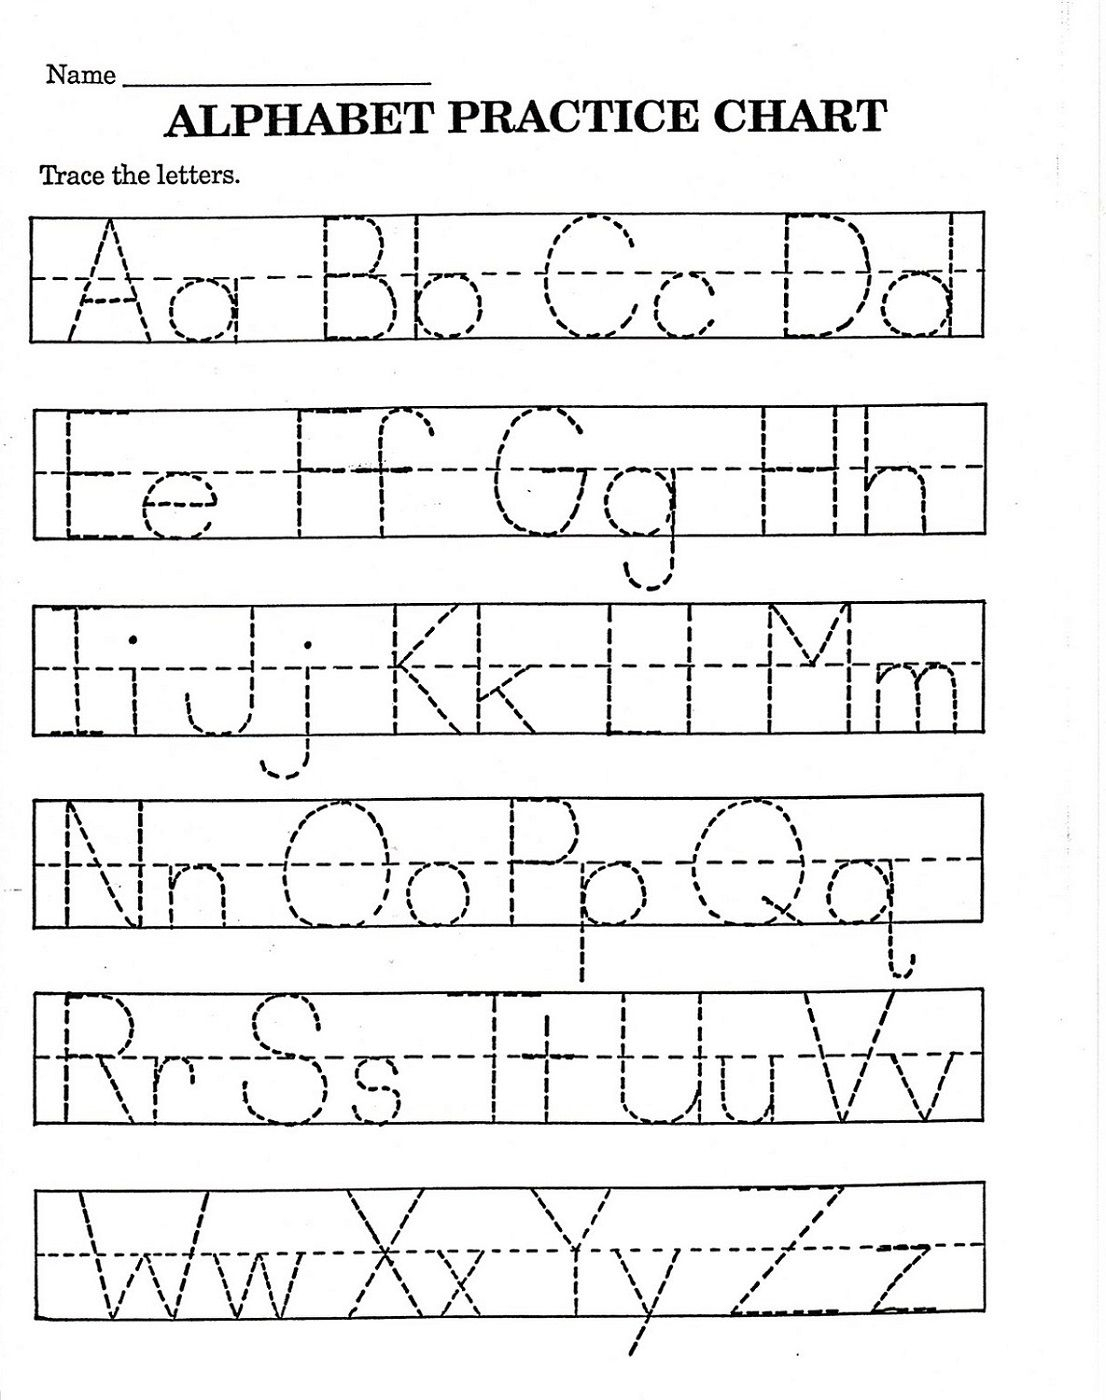 Coloring Book : Tracing Lettersheets Preschool Free Name regarding Tracing Letters Worksheets For Nursery